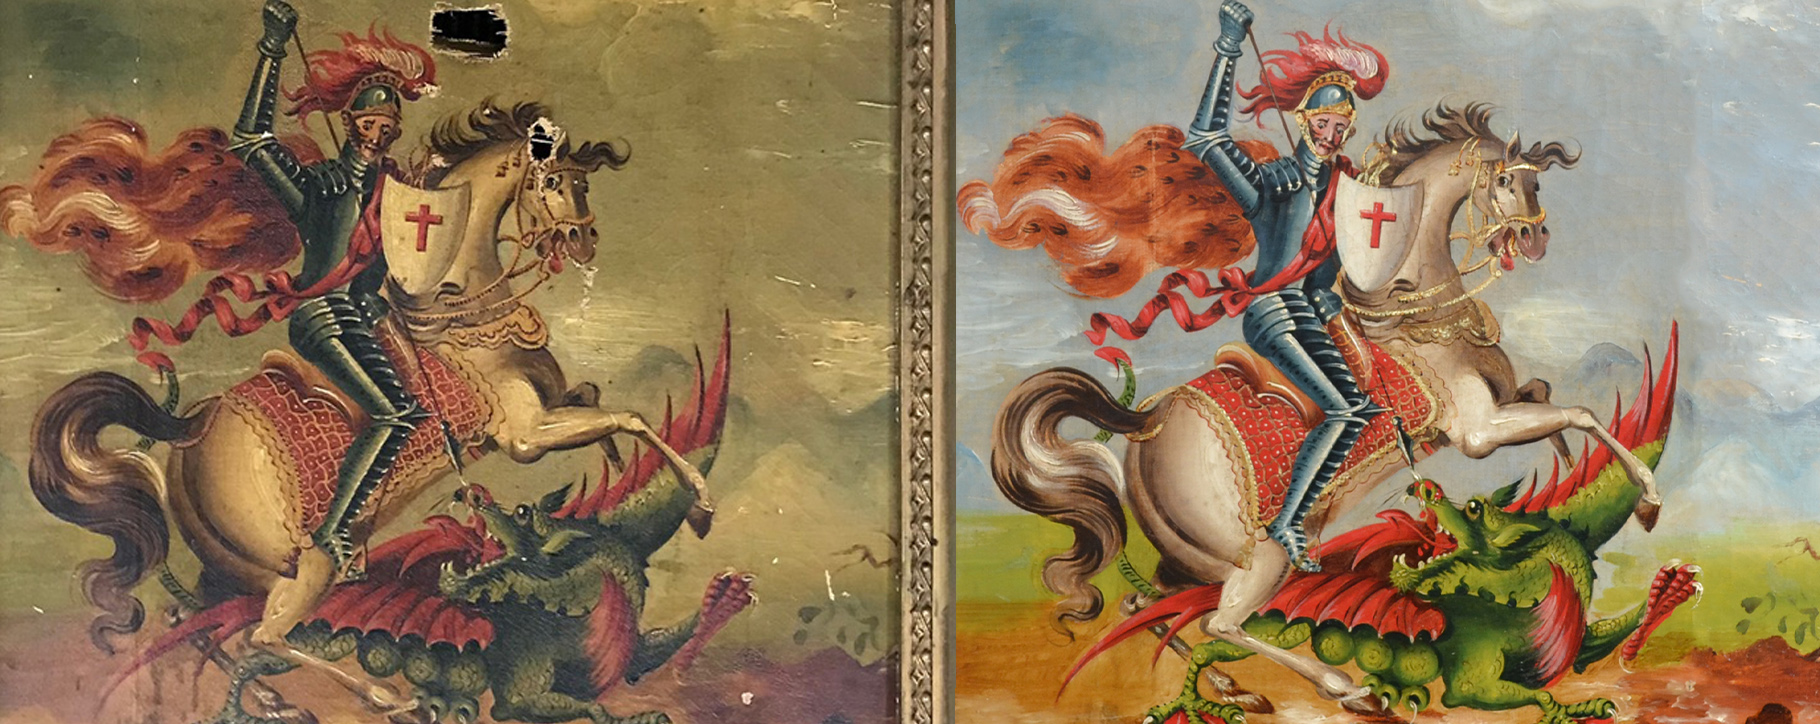 Saint George Before After